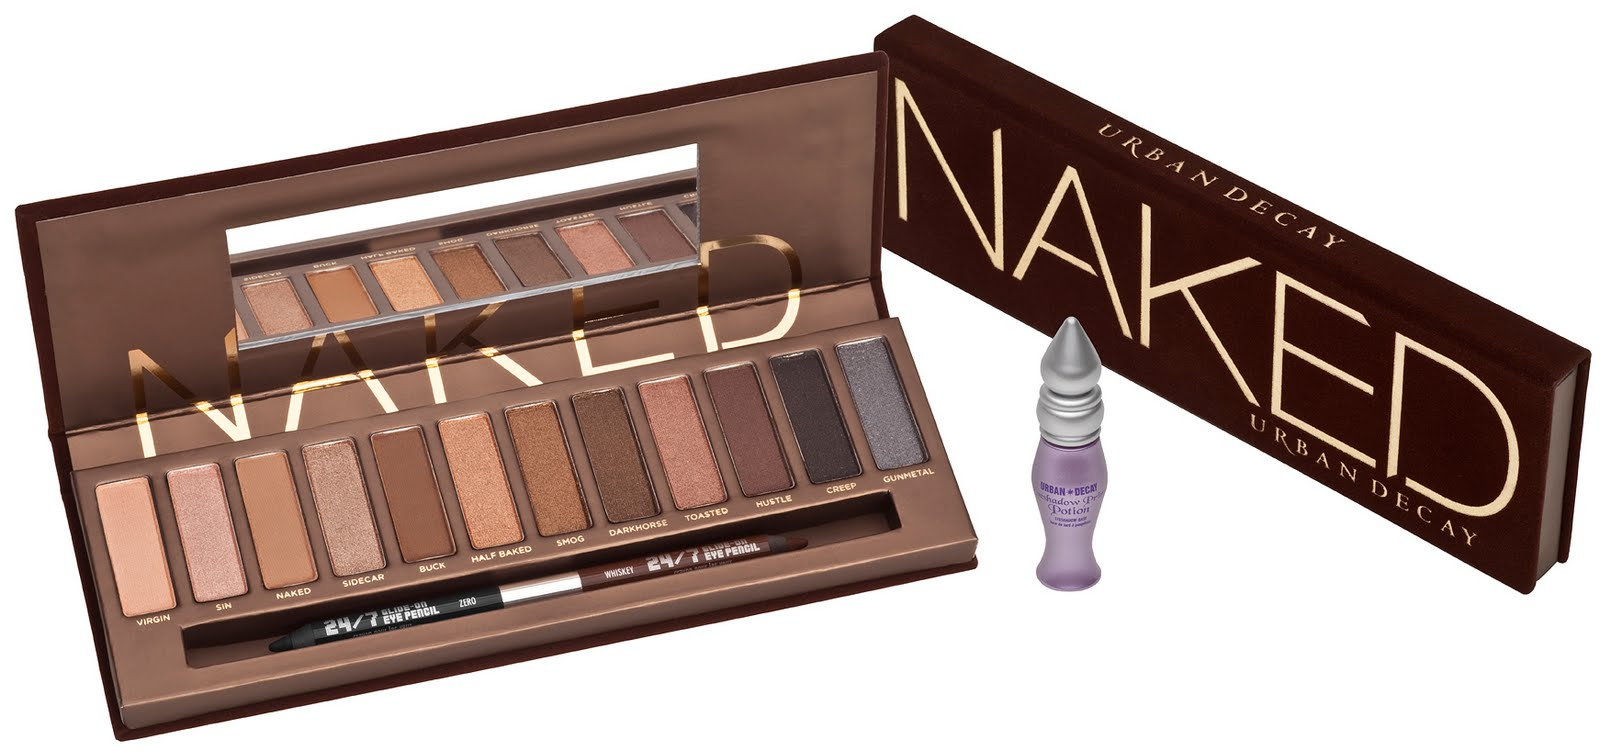 1. Urban Decay Naked Eyeshadow Palette